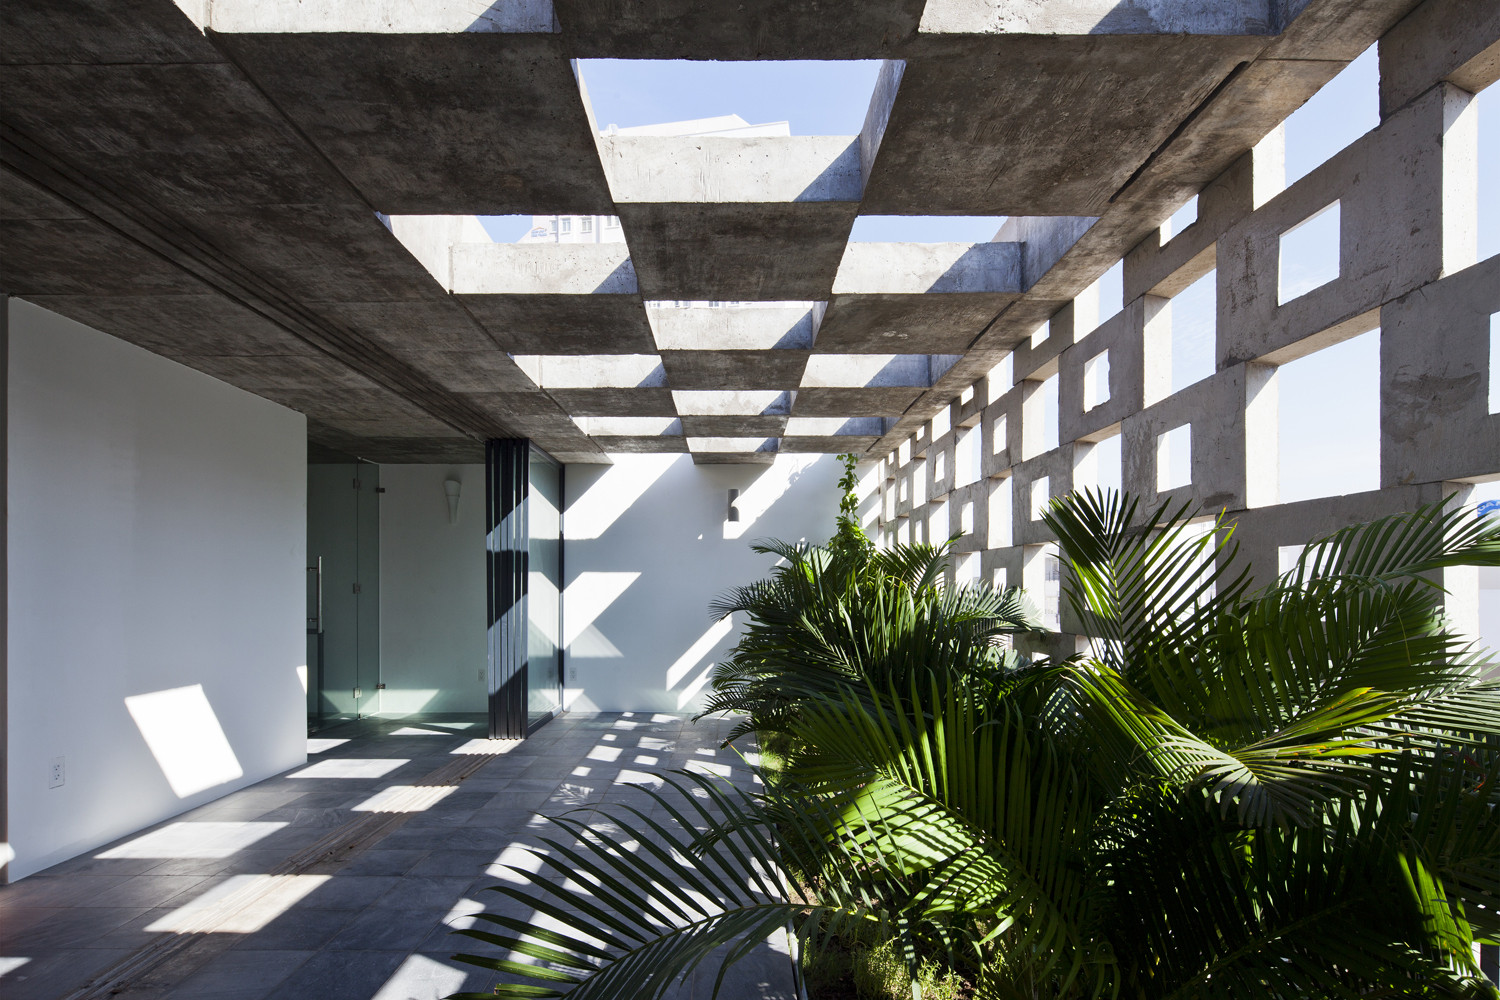 Take a Moment to Enjoy ArchDaily's 12 Most Popular Outdoor Spaces on Pinterest, Binh Thanh House / Vo Trong Nghia Architects + Sanuki + Nishizawa architects. Image © Hiroyuki Oki